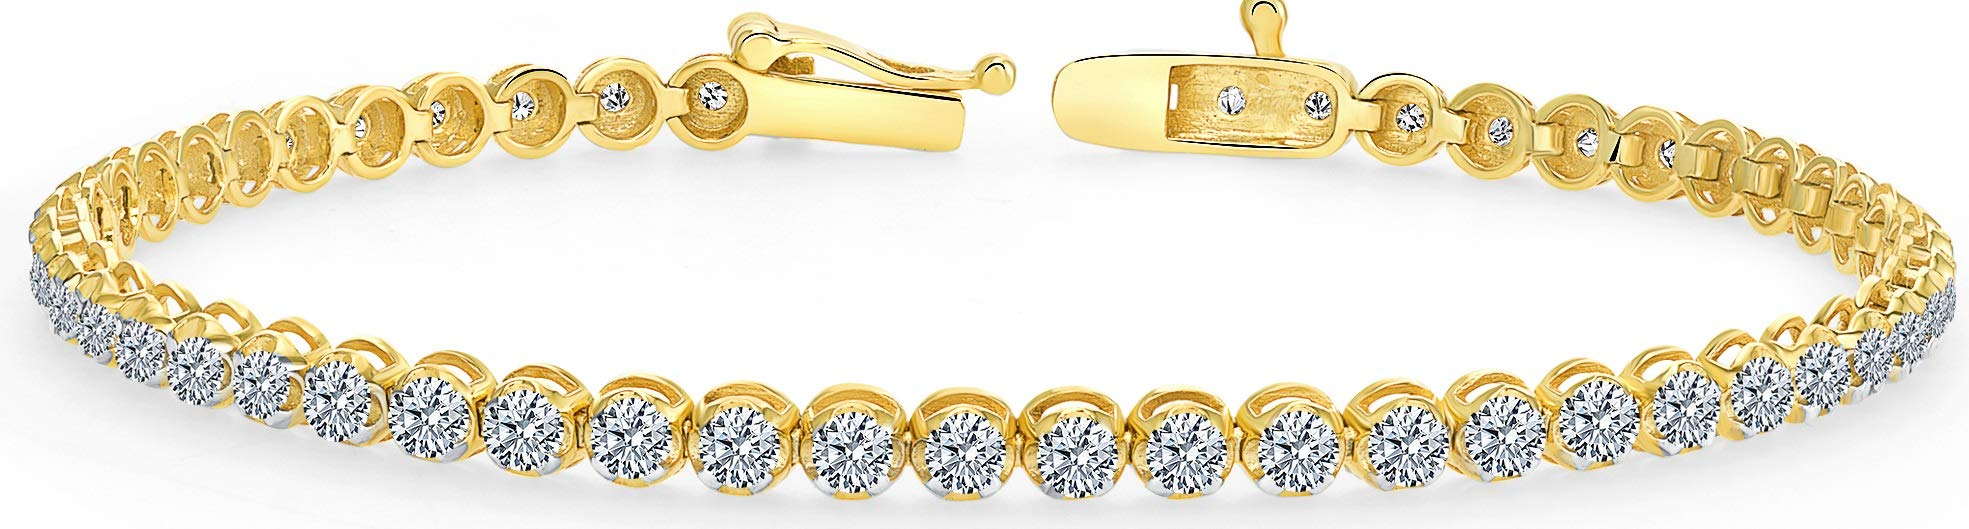 Beverly Hills Jewelers 1.00 Carat tw Beautiful Yellow Gold Round Brilliant Cut Shiny White (I Clarity) Diamond Ladies Tennis Bracelet.Secure Double Clasp. Bracelet Box Included.